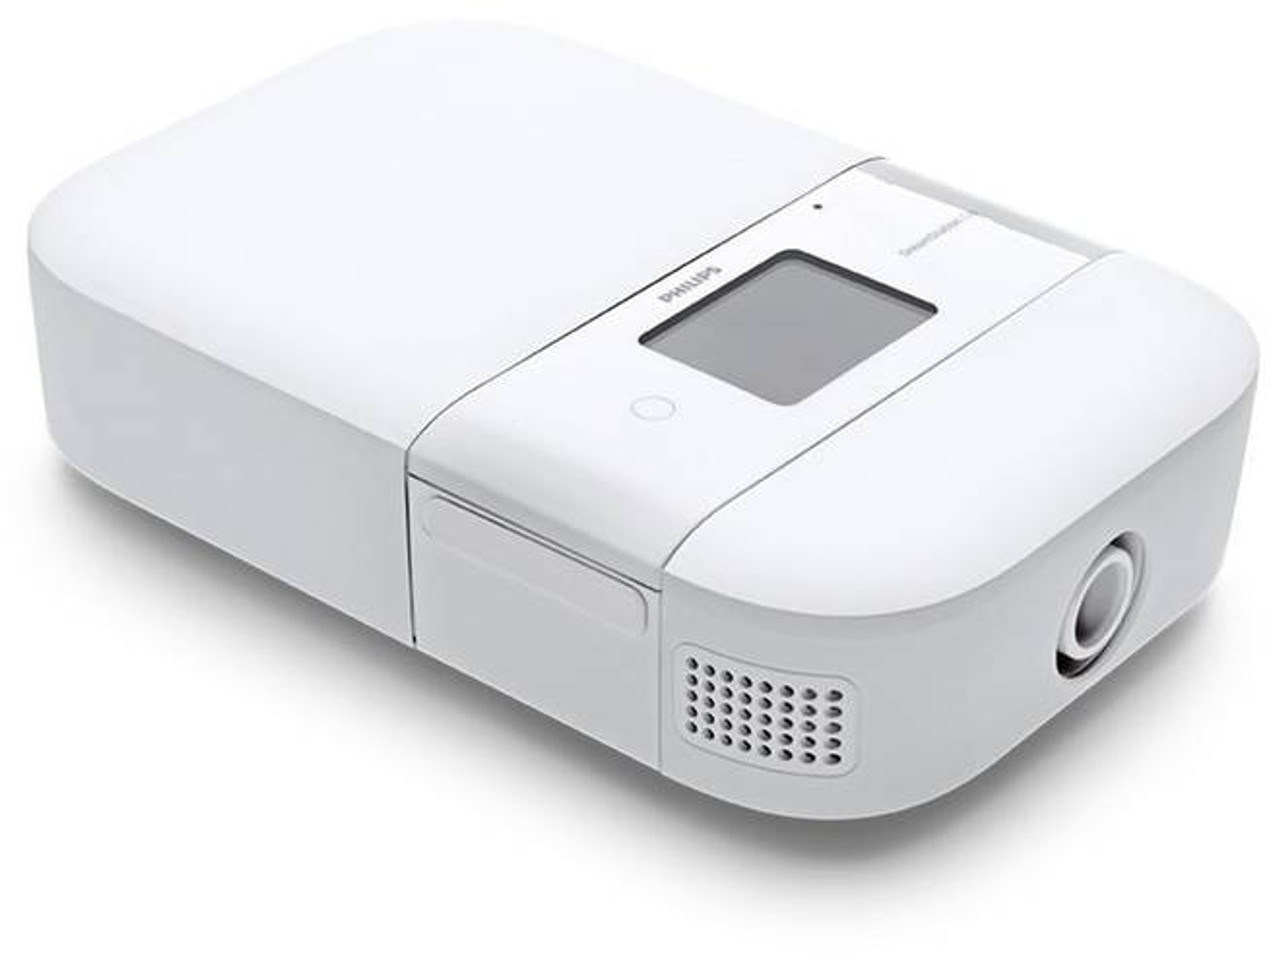 DreamStation Go CPAP with Travel Battery attached (CPAP not included)